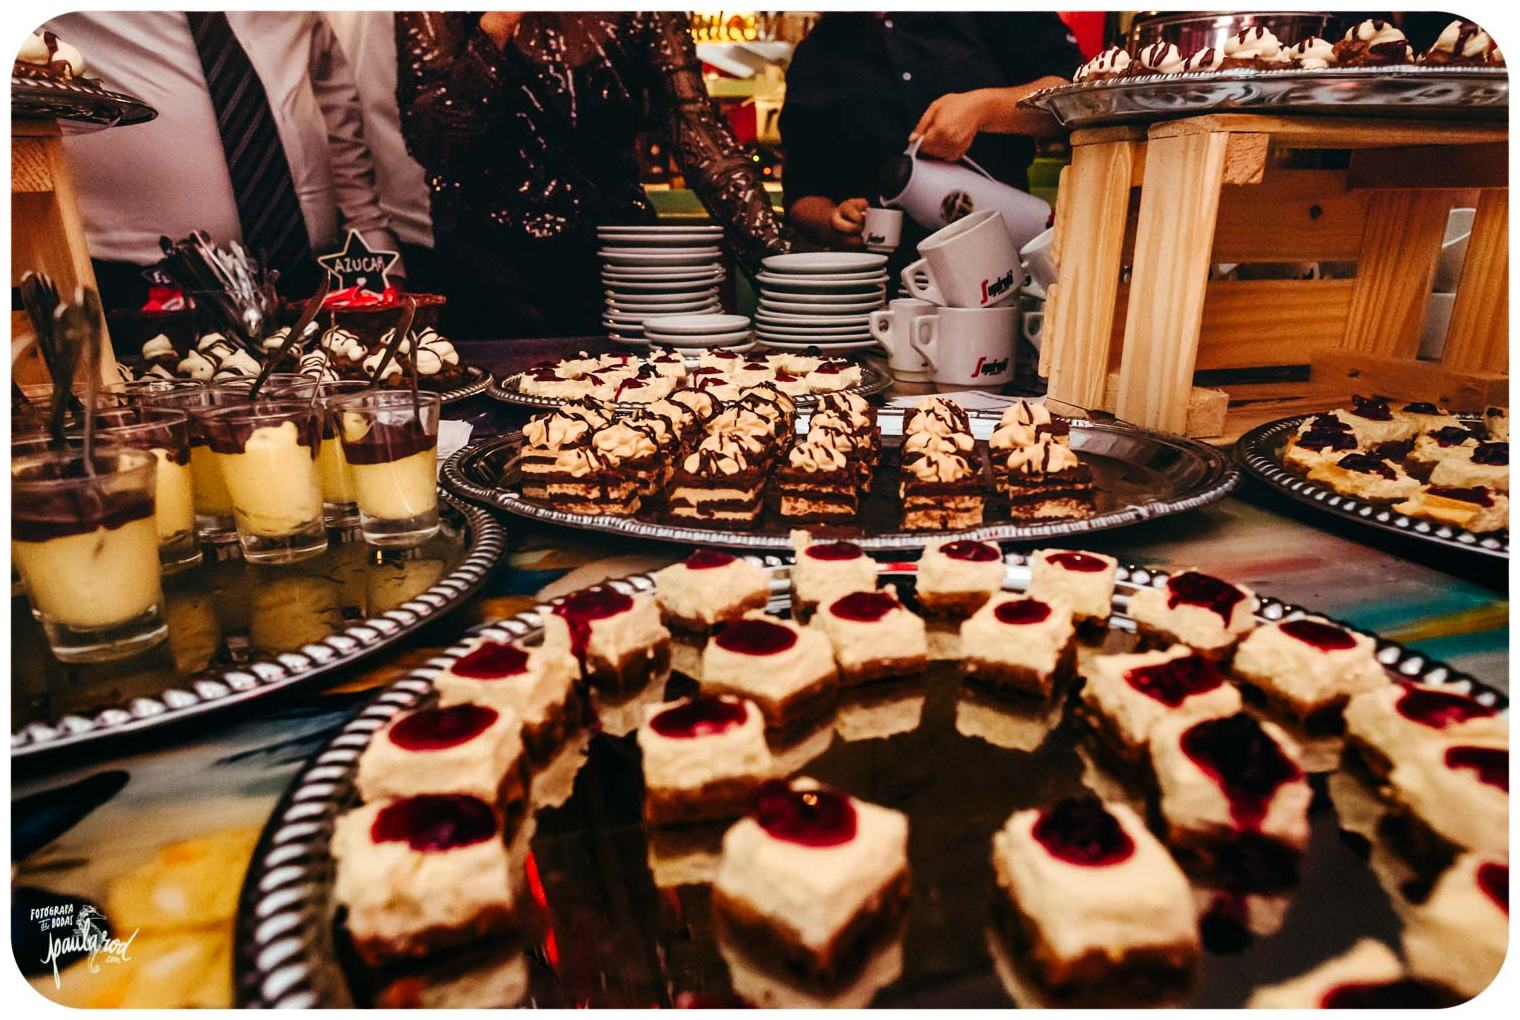 Catering dulce para eventos sociales - 2.jpg